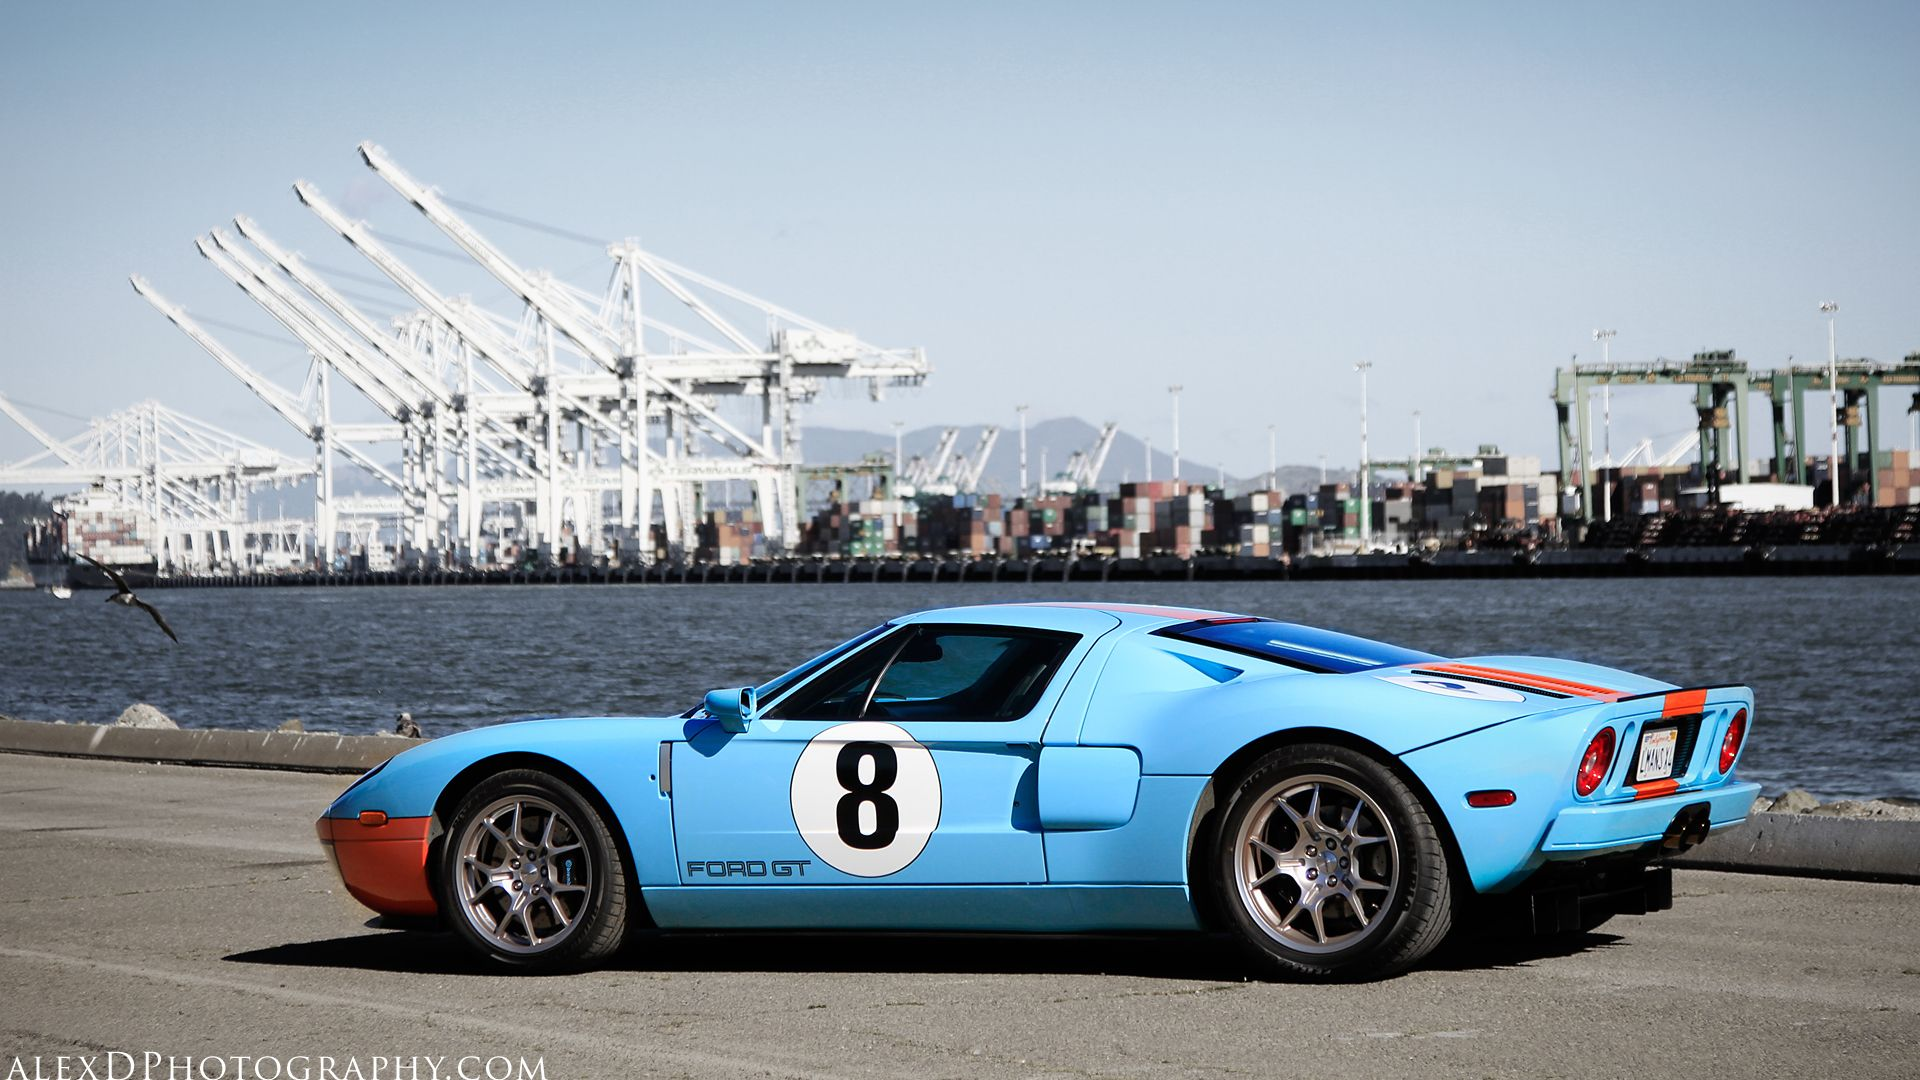 Http sharememe org wp content uploads 2013 12 ford gt wallpaper 866 hd wallpapers background jpg chevrolet vs fords pinterest ford gt ford and